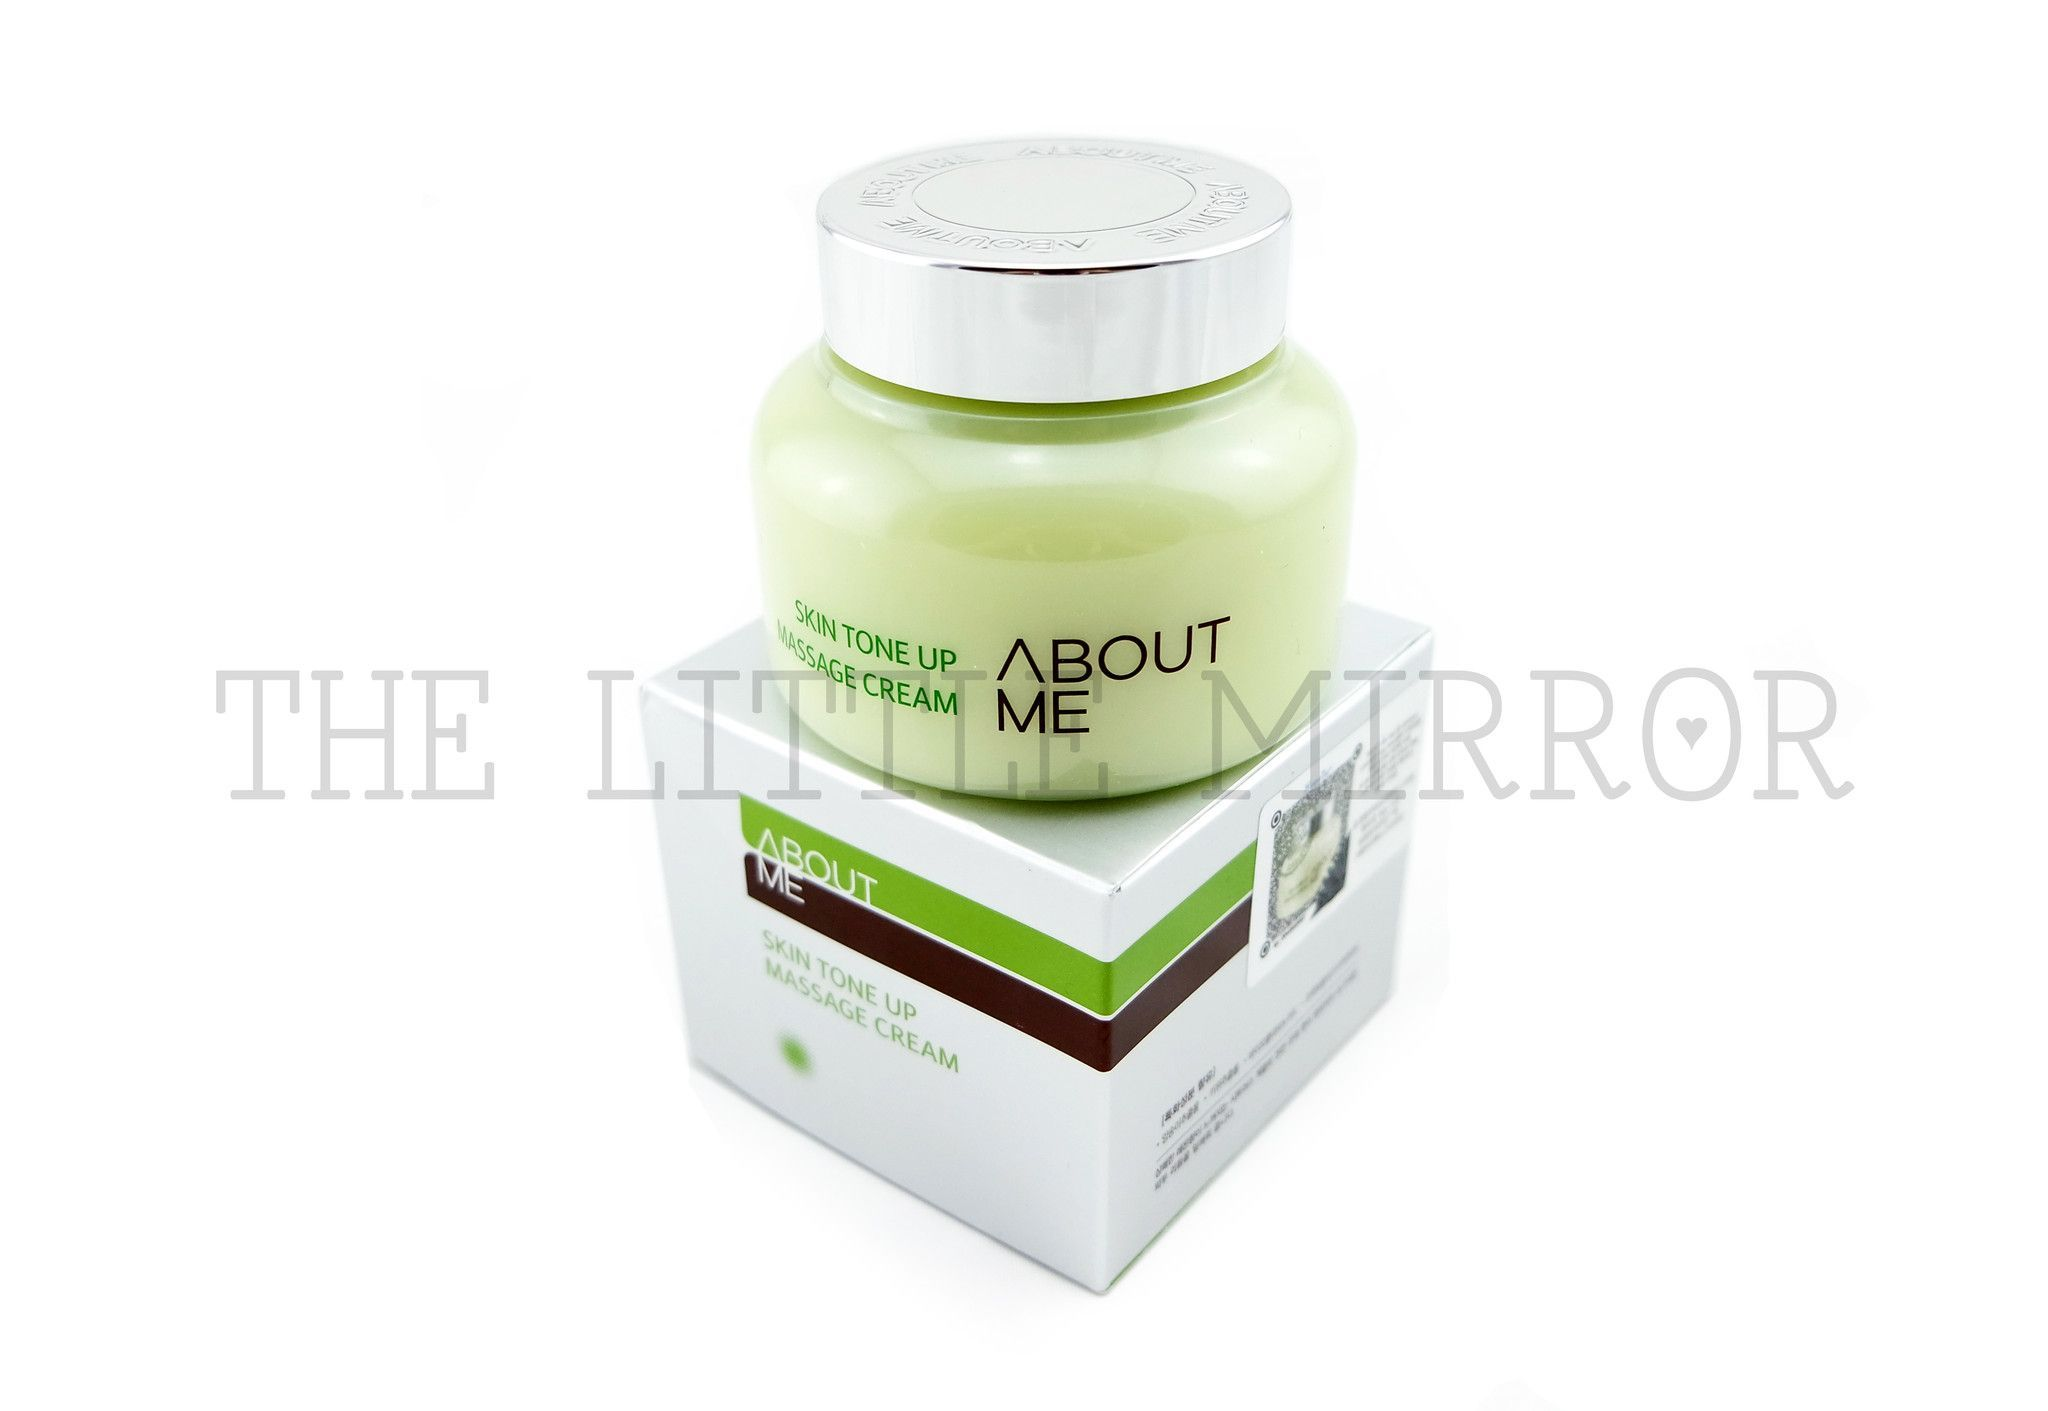 ABOUT ME D-toc Booster Skin Tone Up Massage Cream